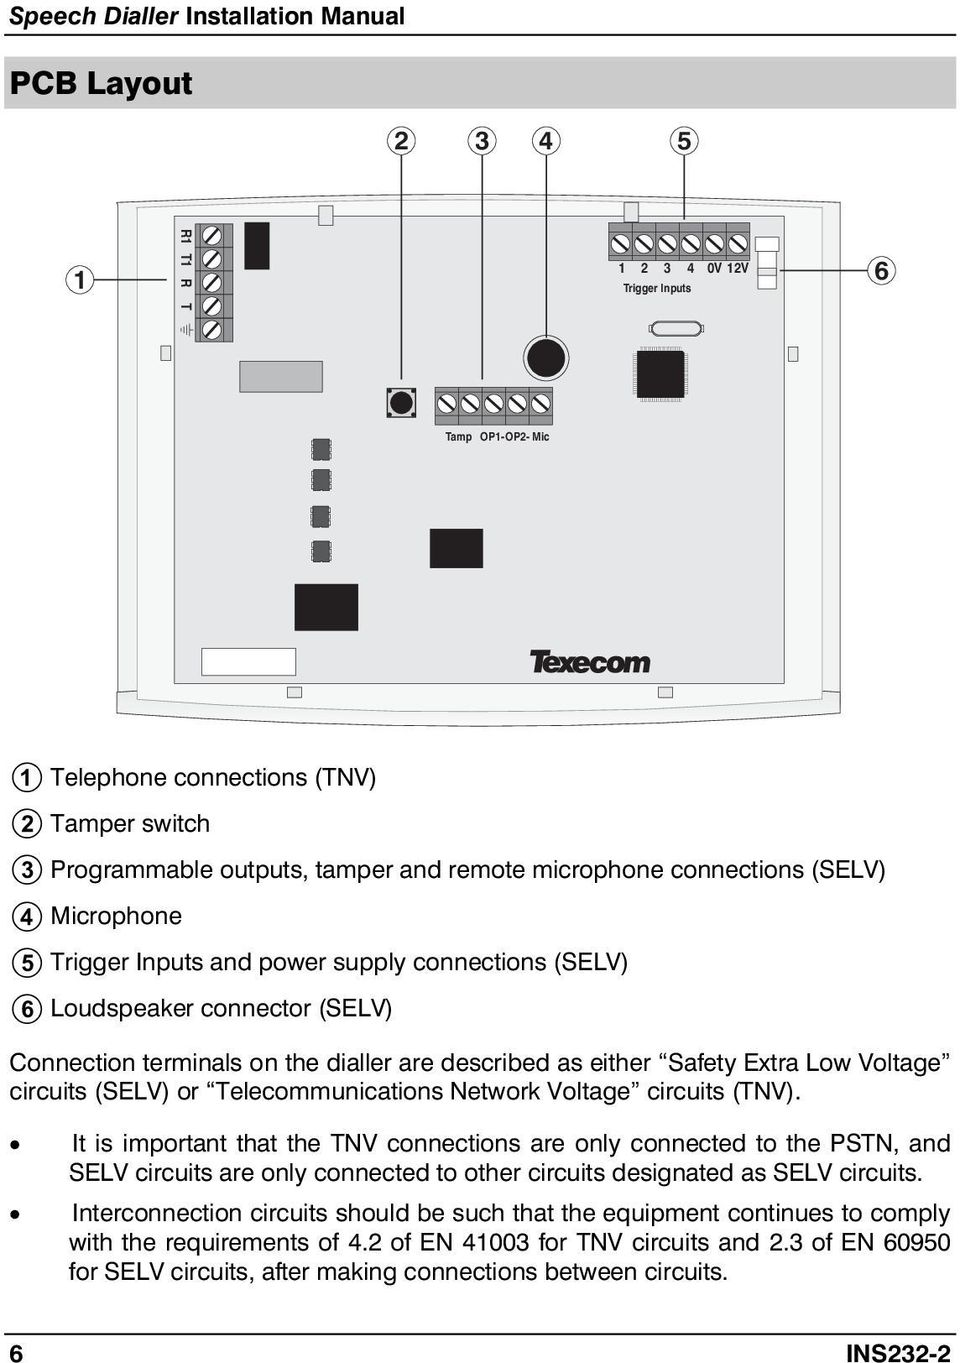 medium resolution of circuits tnv it is imptant that the tnv connections are only connected to 7 connections to the control panel speech dialler installation manual